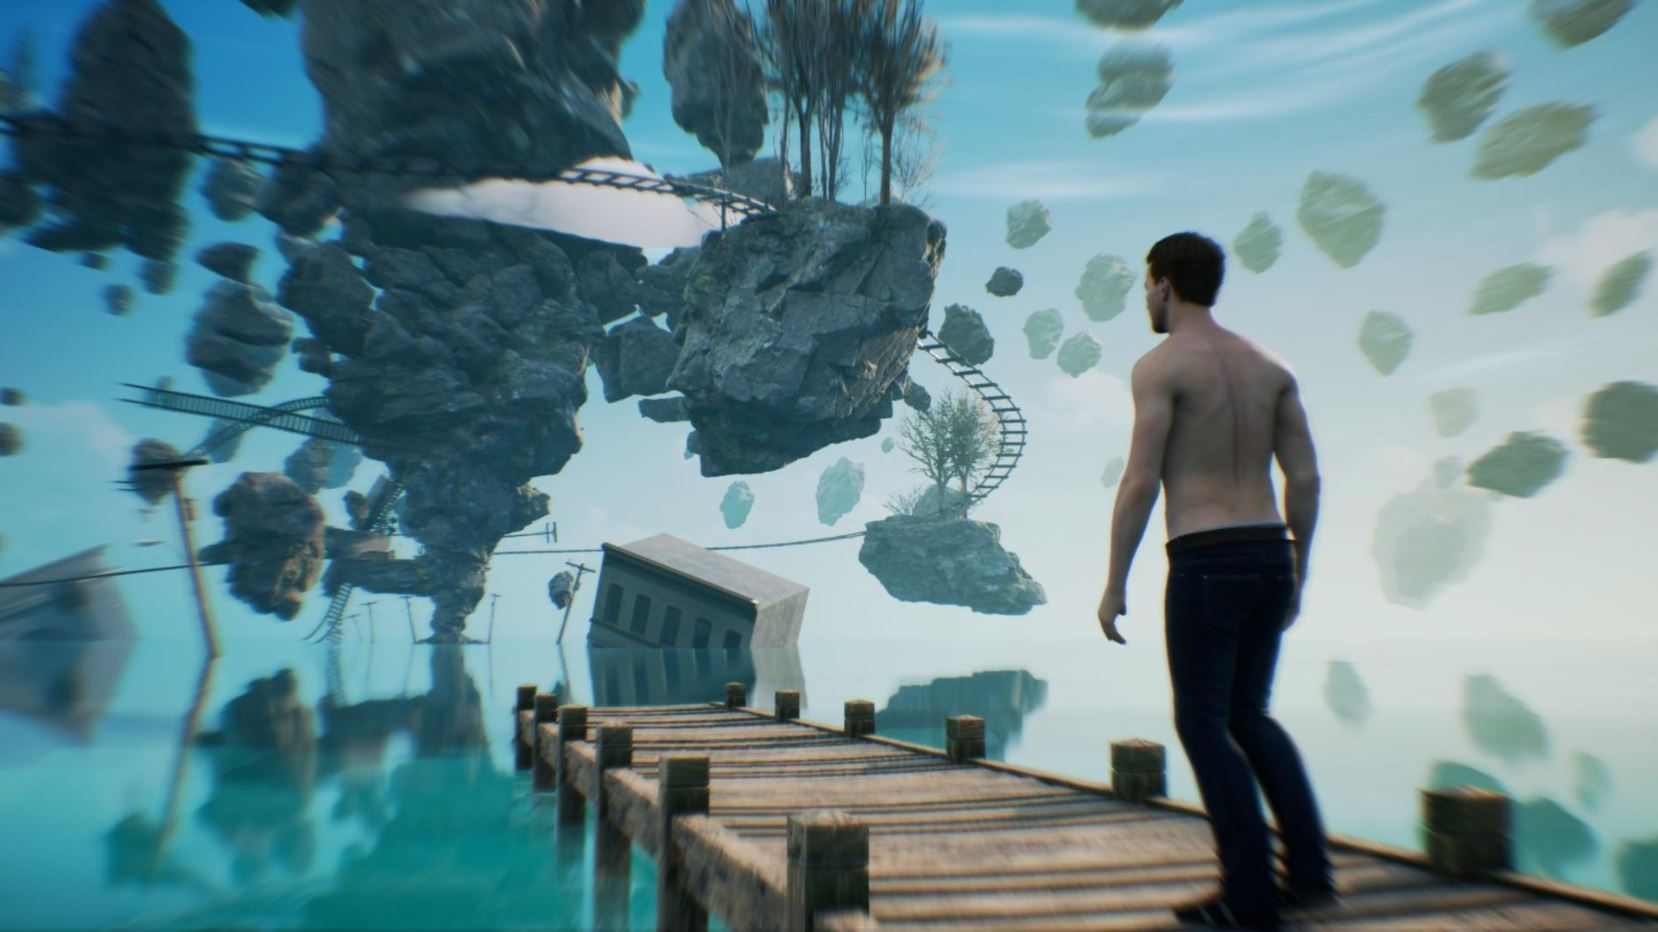 twin-mirror-review-ps4-dontnods-excellent-storytelling-and-characters-clash-with-unique-but-frustrating-gameplay-1